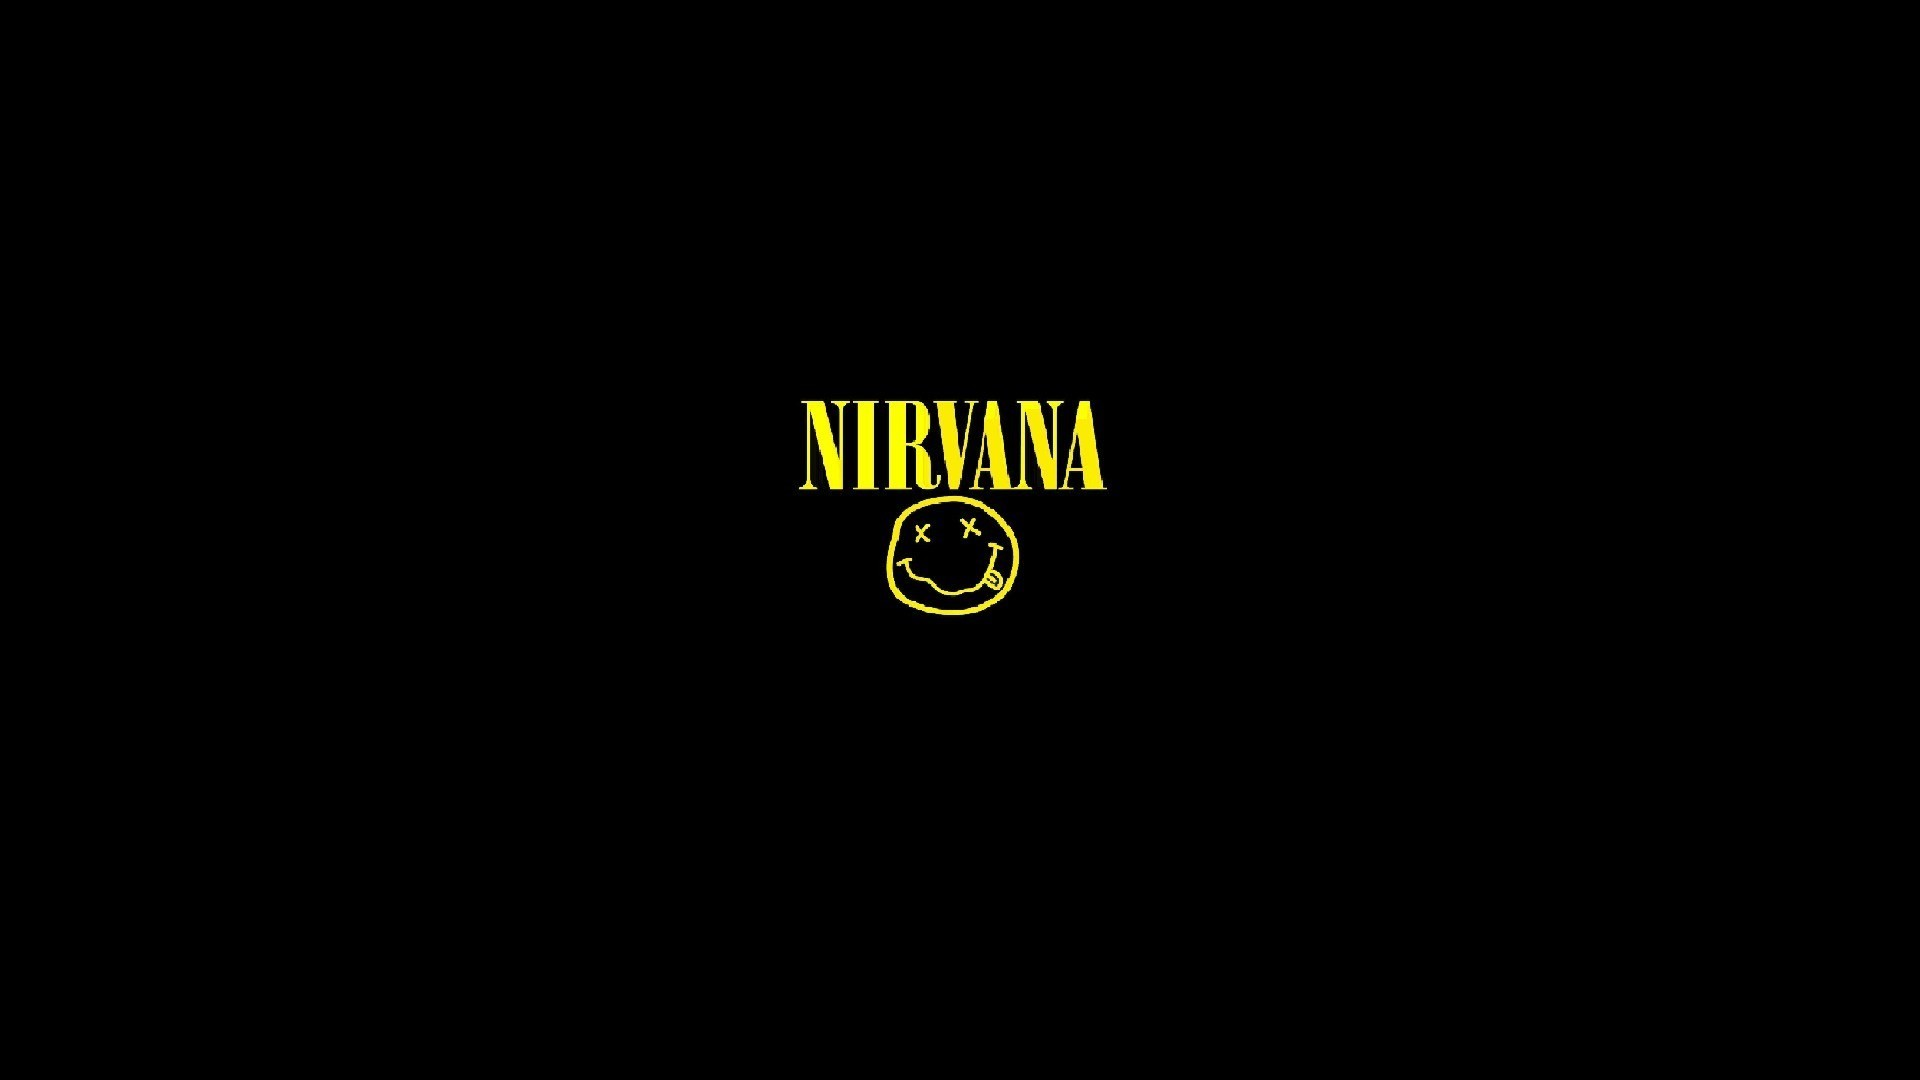 1920x1080 nirvana logo wallpaper hd backgrounds images (Nevaeh Gill 1920 x 1080) |  ololoshenka | Pinterest | Nirvana logo, Wallpaper downloads and Hd  backgrounds